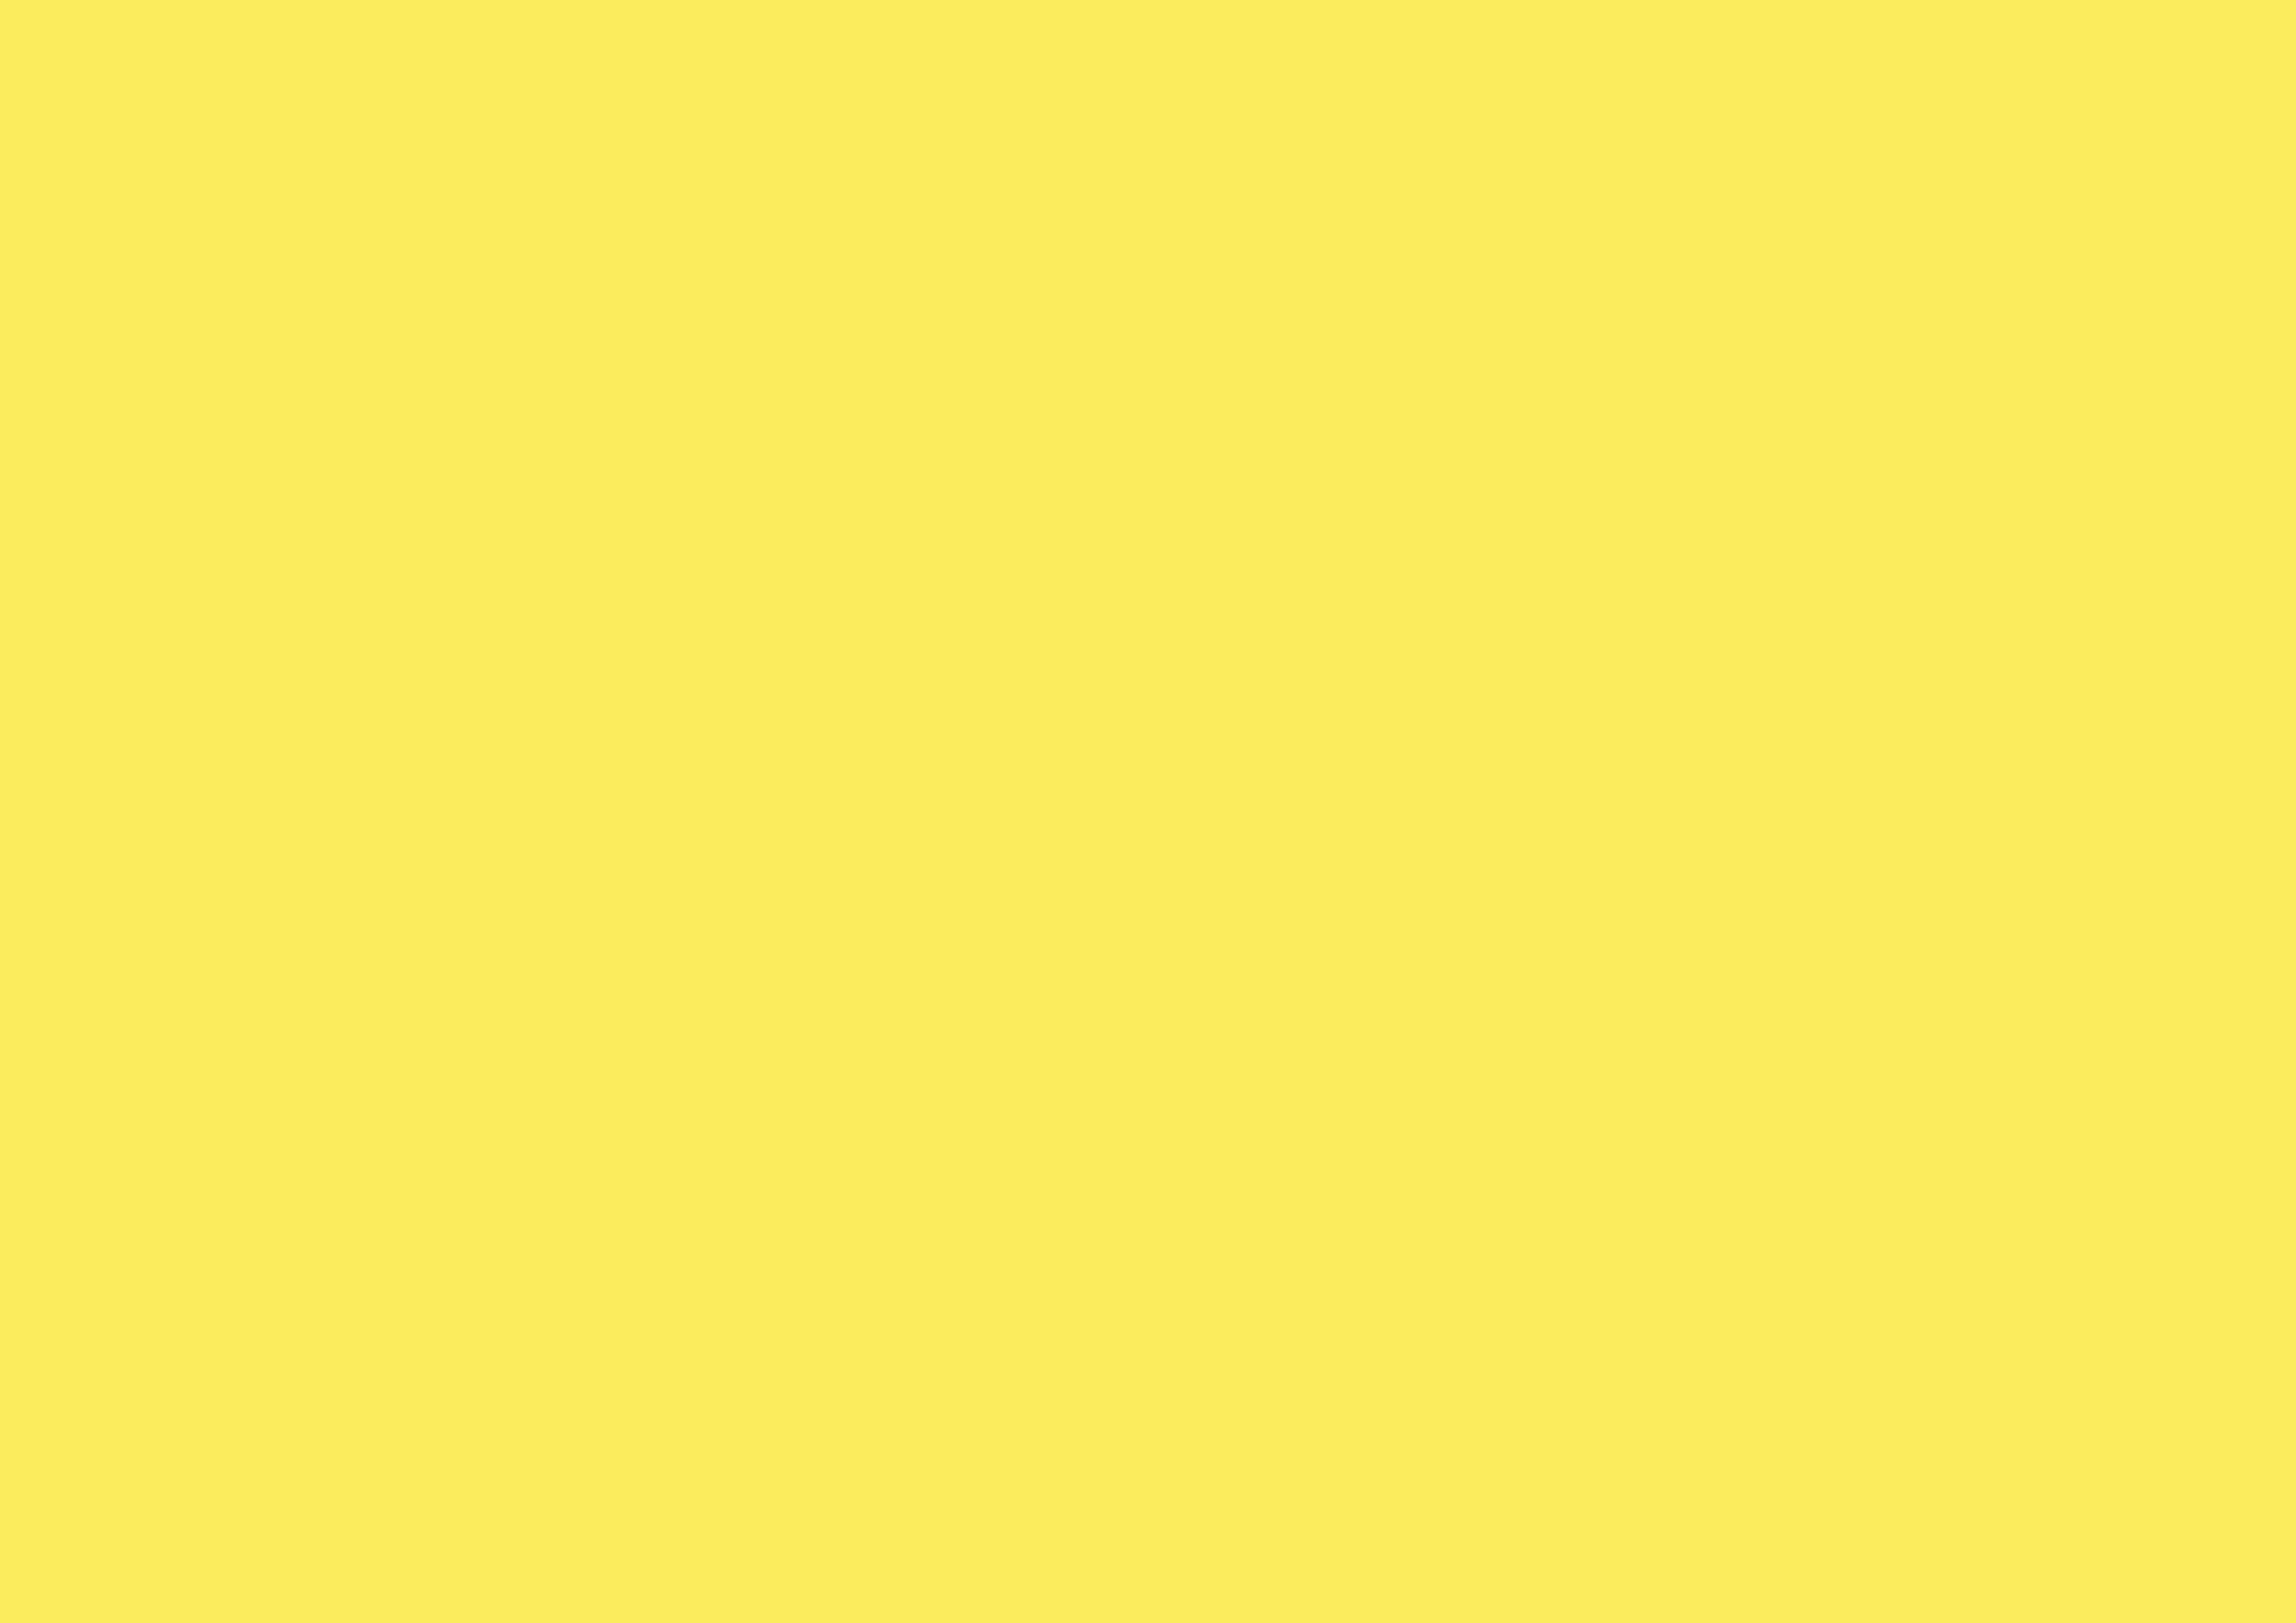 3508x2480 Maize Solid Color Background